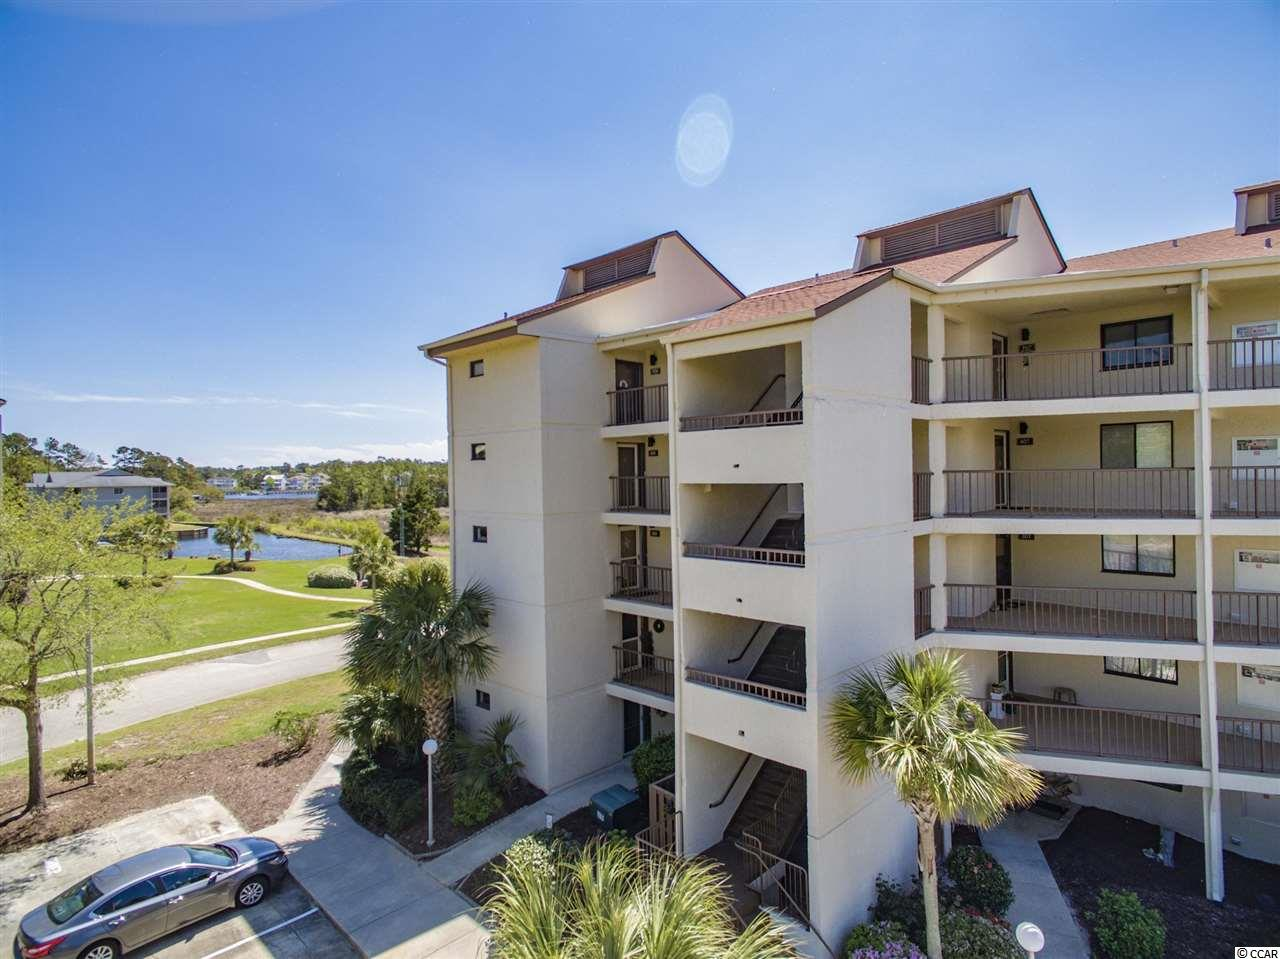 You will love the privacy of the water views from your oversized balcony at this price! You may live outside at this one! Not only do you have a huge balcony for entertaining and great views, but youcan enjoy the boaters life because this condo comes with a 42 ft. boat slip included in the sale! This spacious 2BR/2BA condo in Little River is calling your name for the perfect water life! Come put your personal touch on this condo with some updating and you will have a rare opportunity to own a unique property that doesn't come available often in this building. Minutes to the beach, a boaters paradise, and a private, secluded best kept secret in Little River. Don't wait!